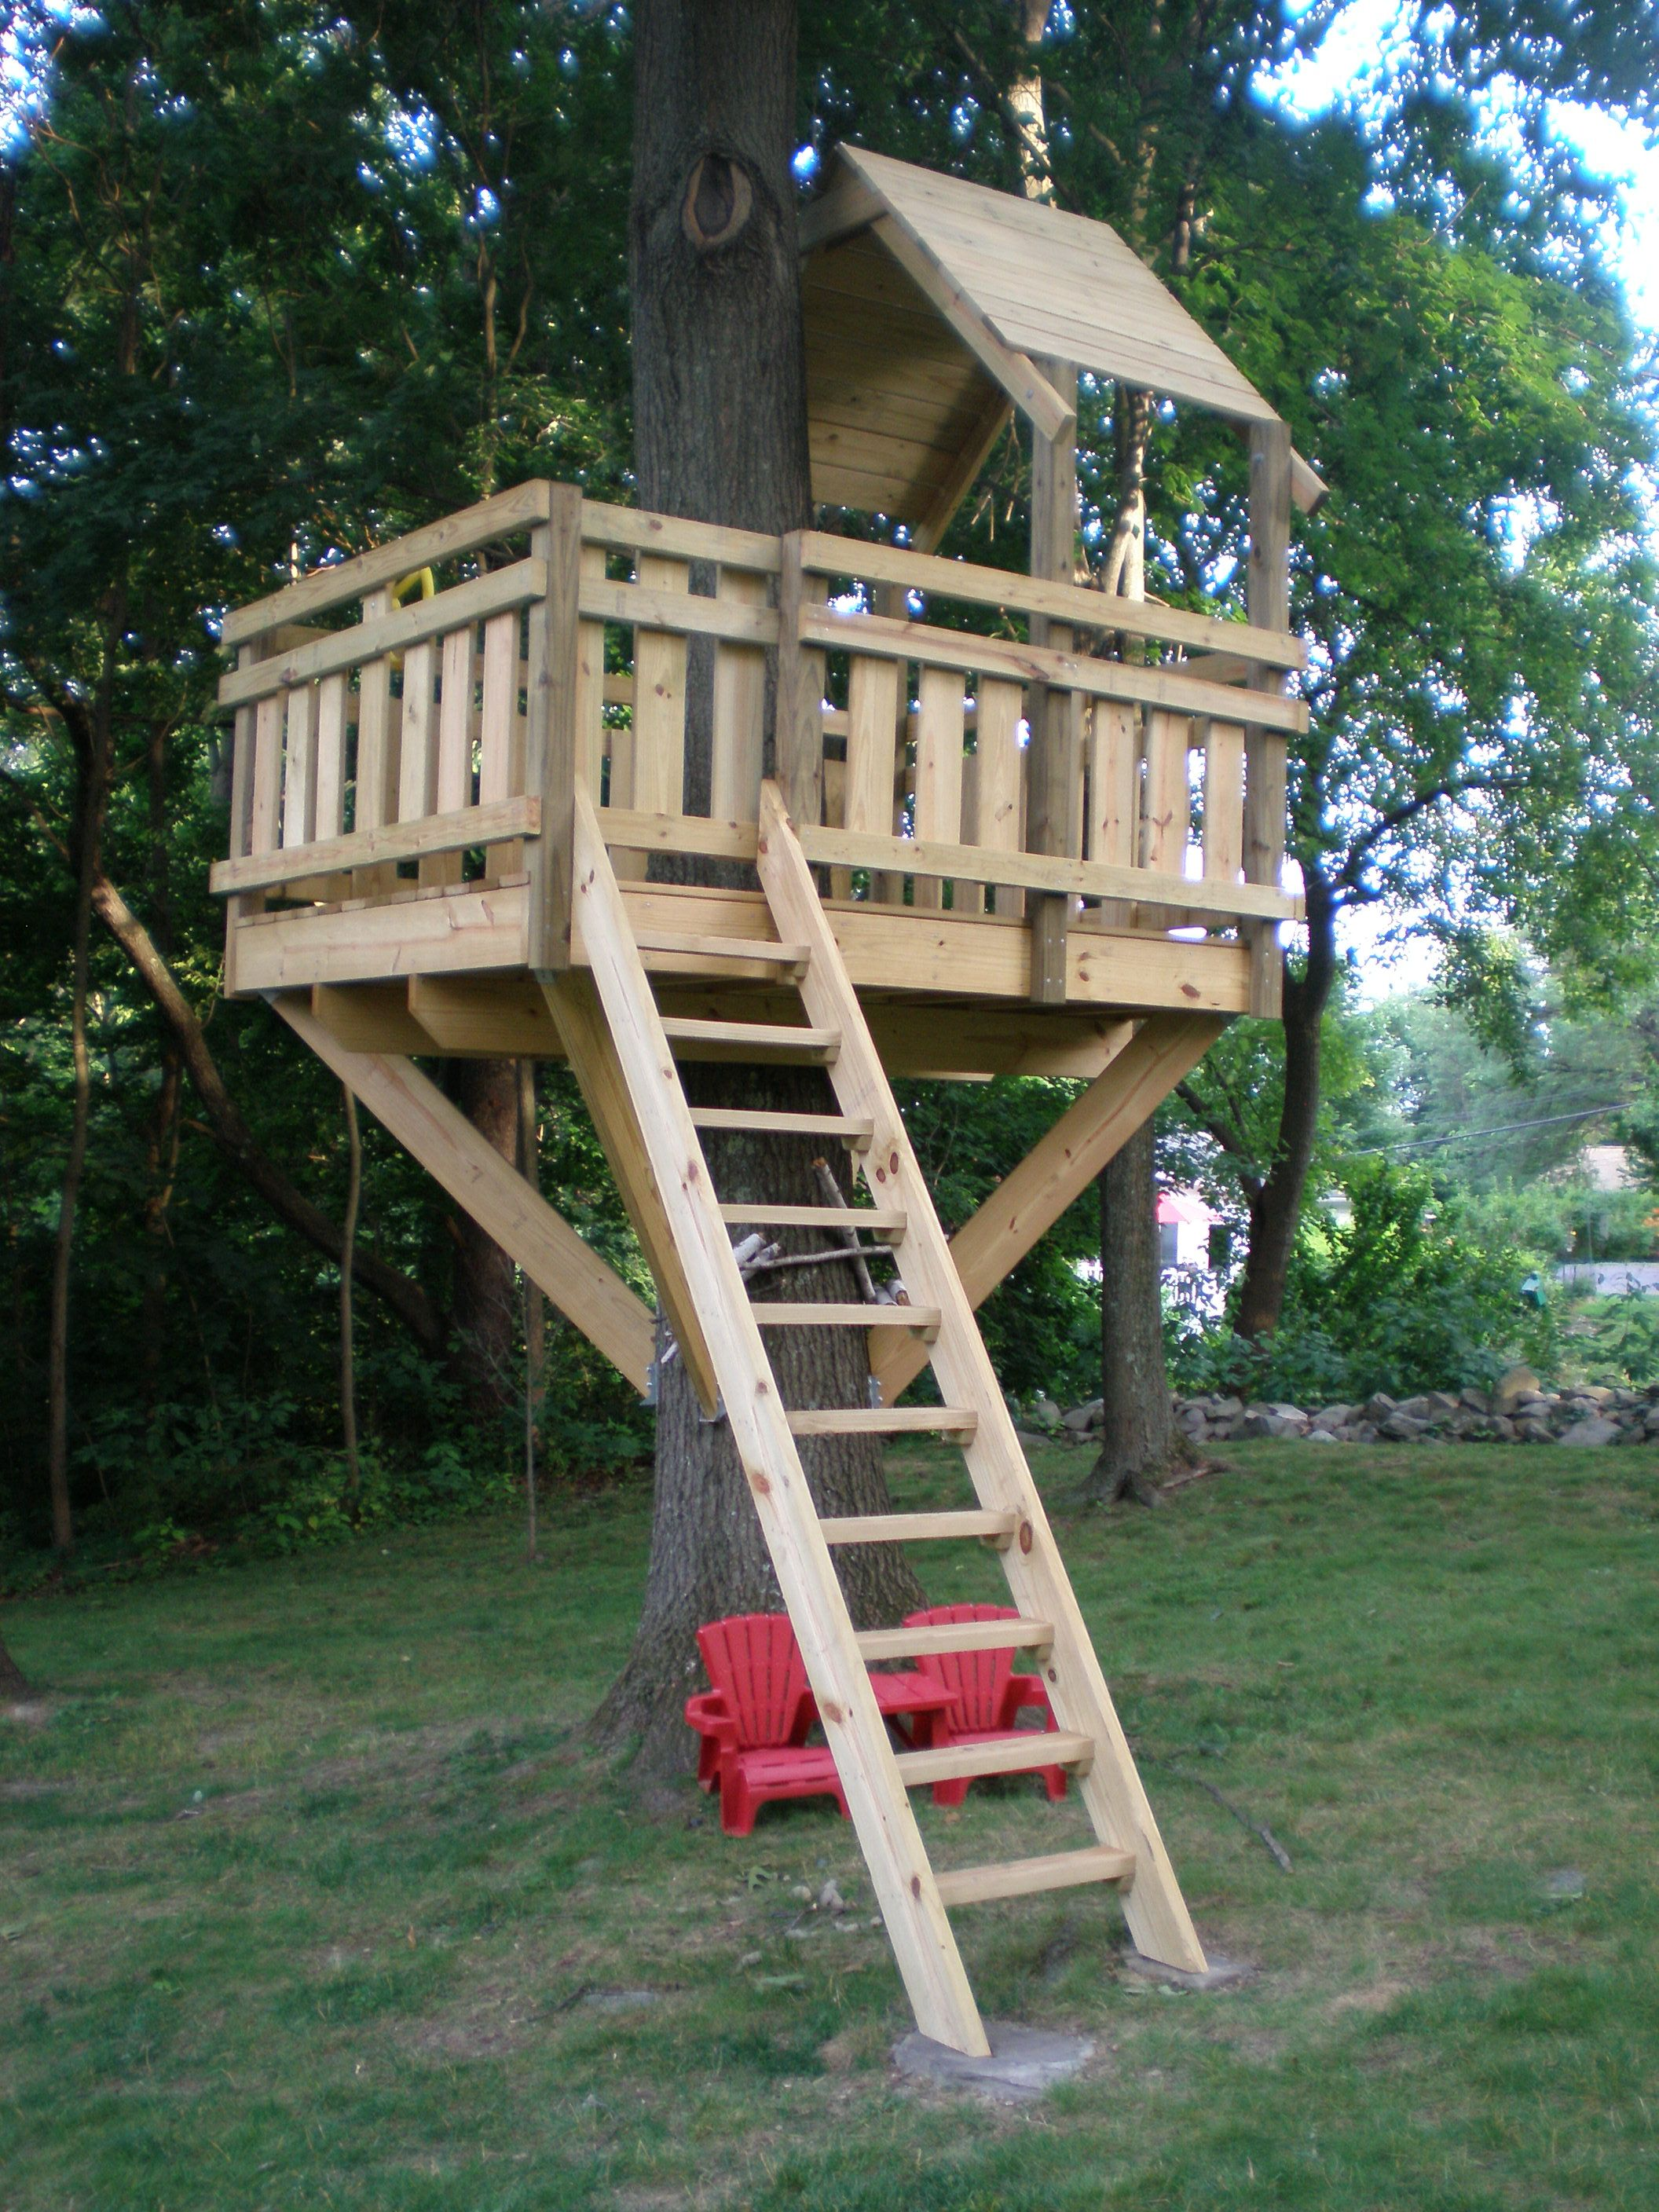 Genial Backyard Forts And Treehouses For Kids | Tree Fort Ladder, Gate, Roof  [Finale